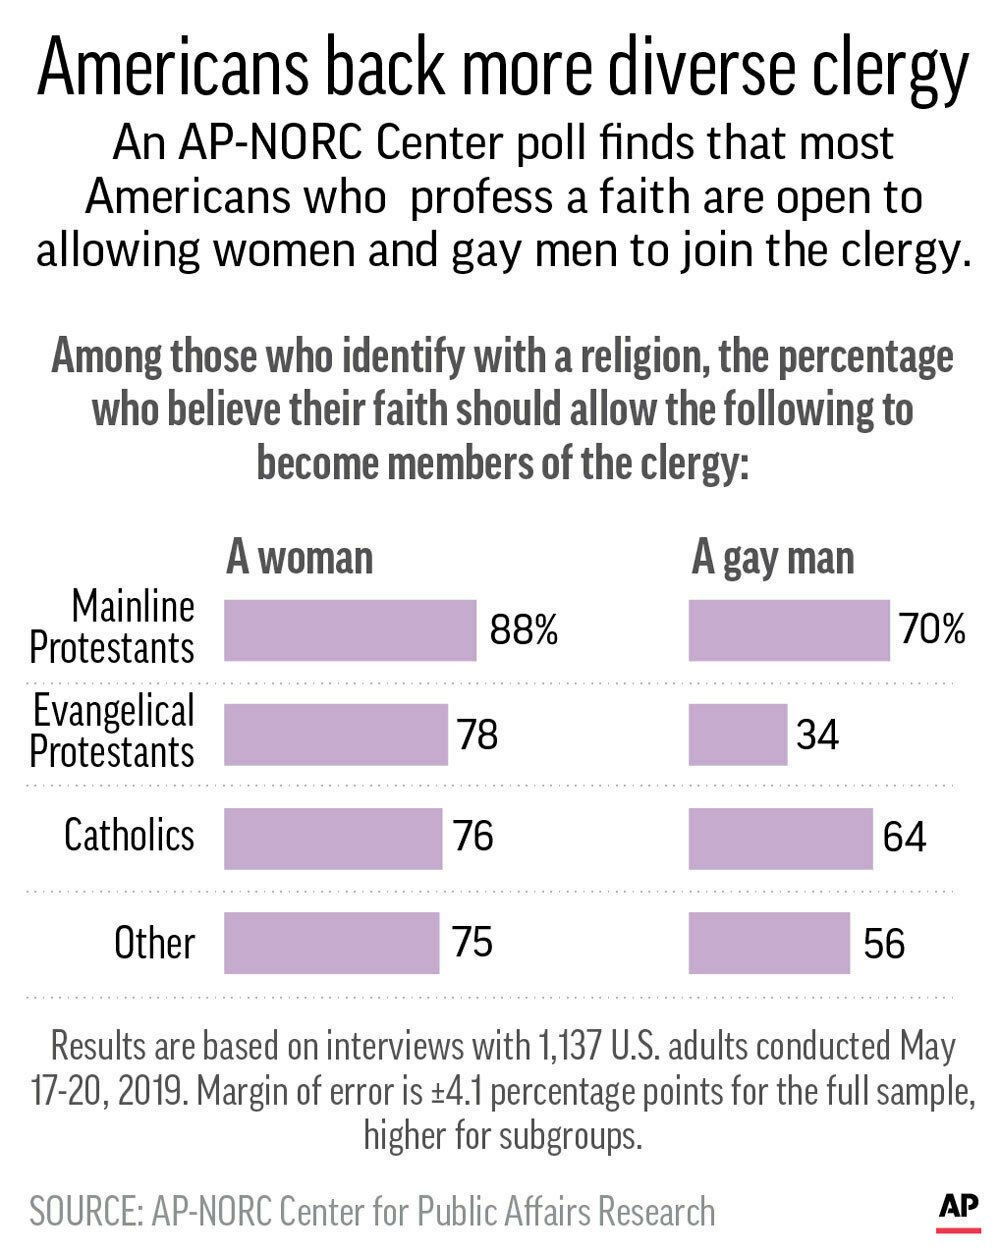 Graphic shows results of AP-NORC poll on attitudes of religious Americans toward members of the clergy.